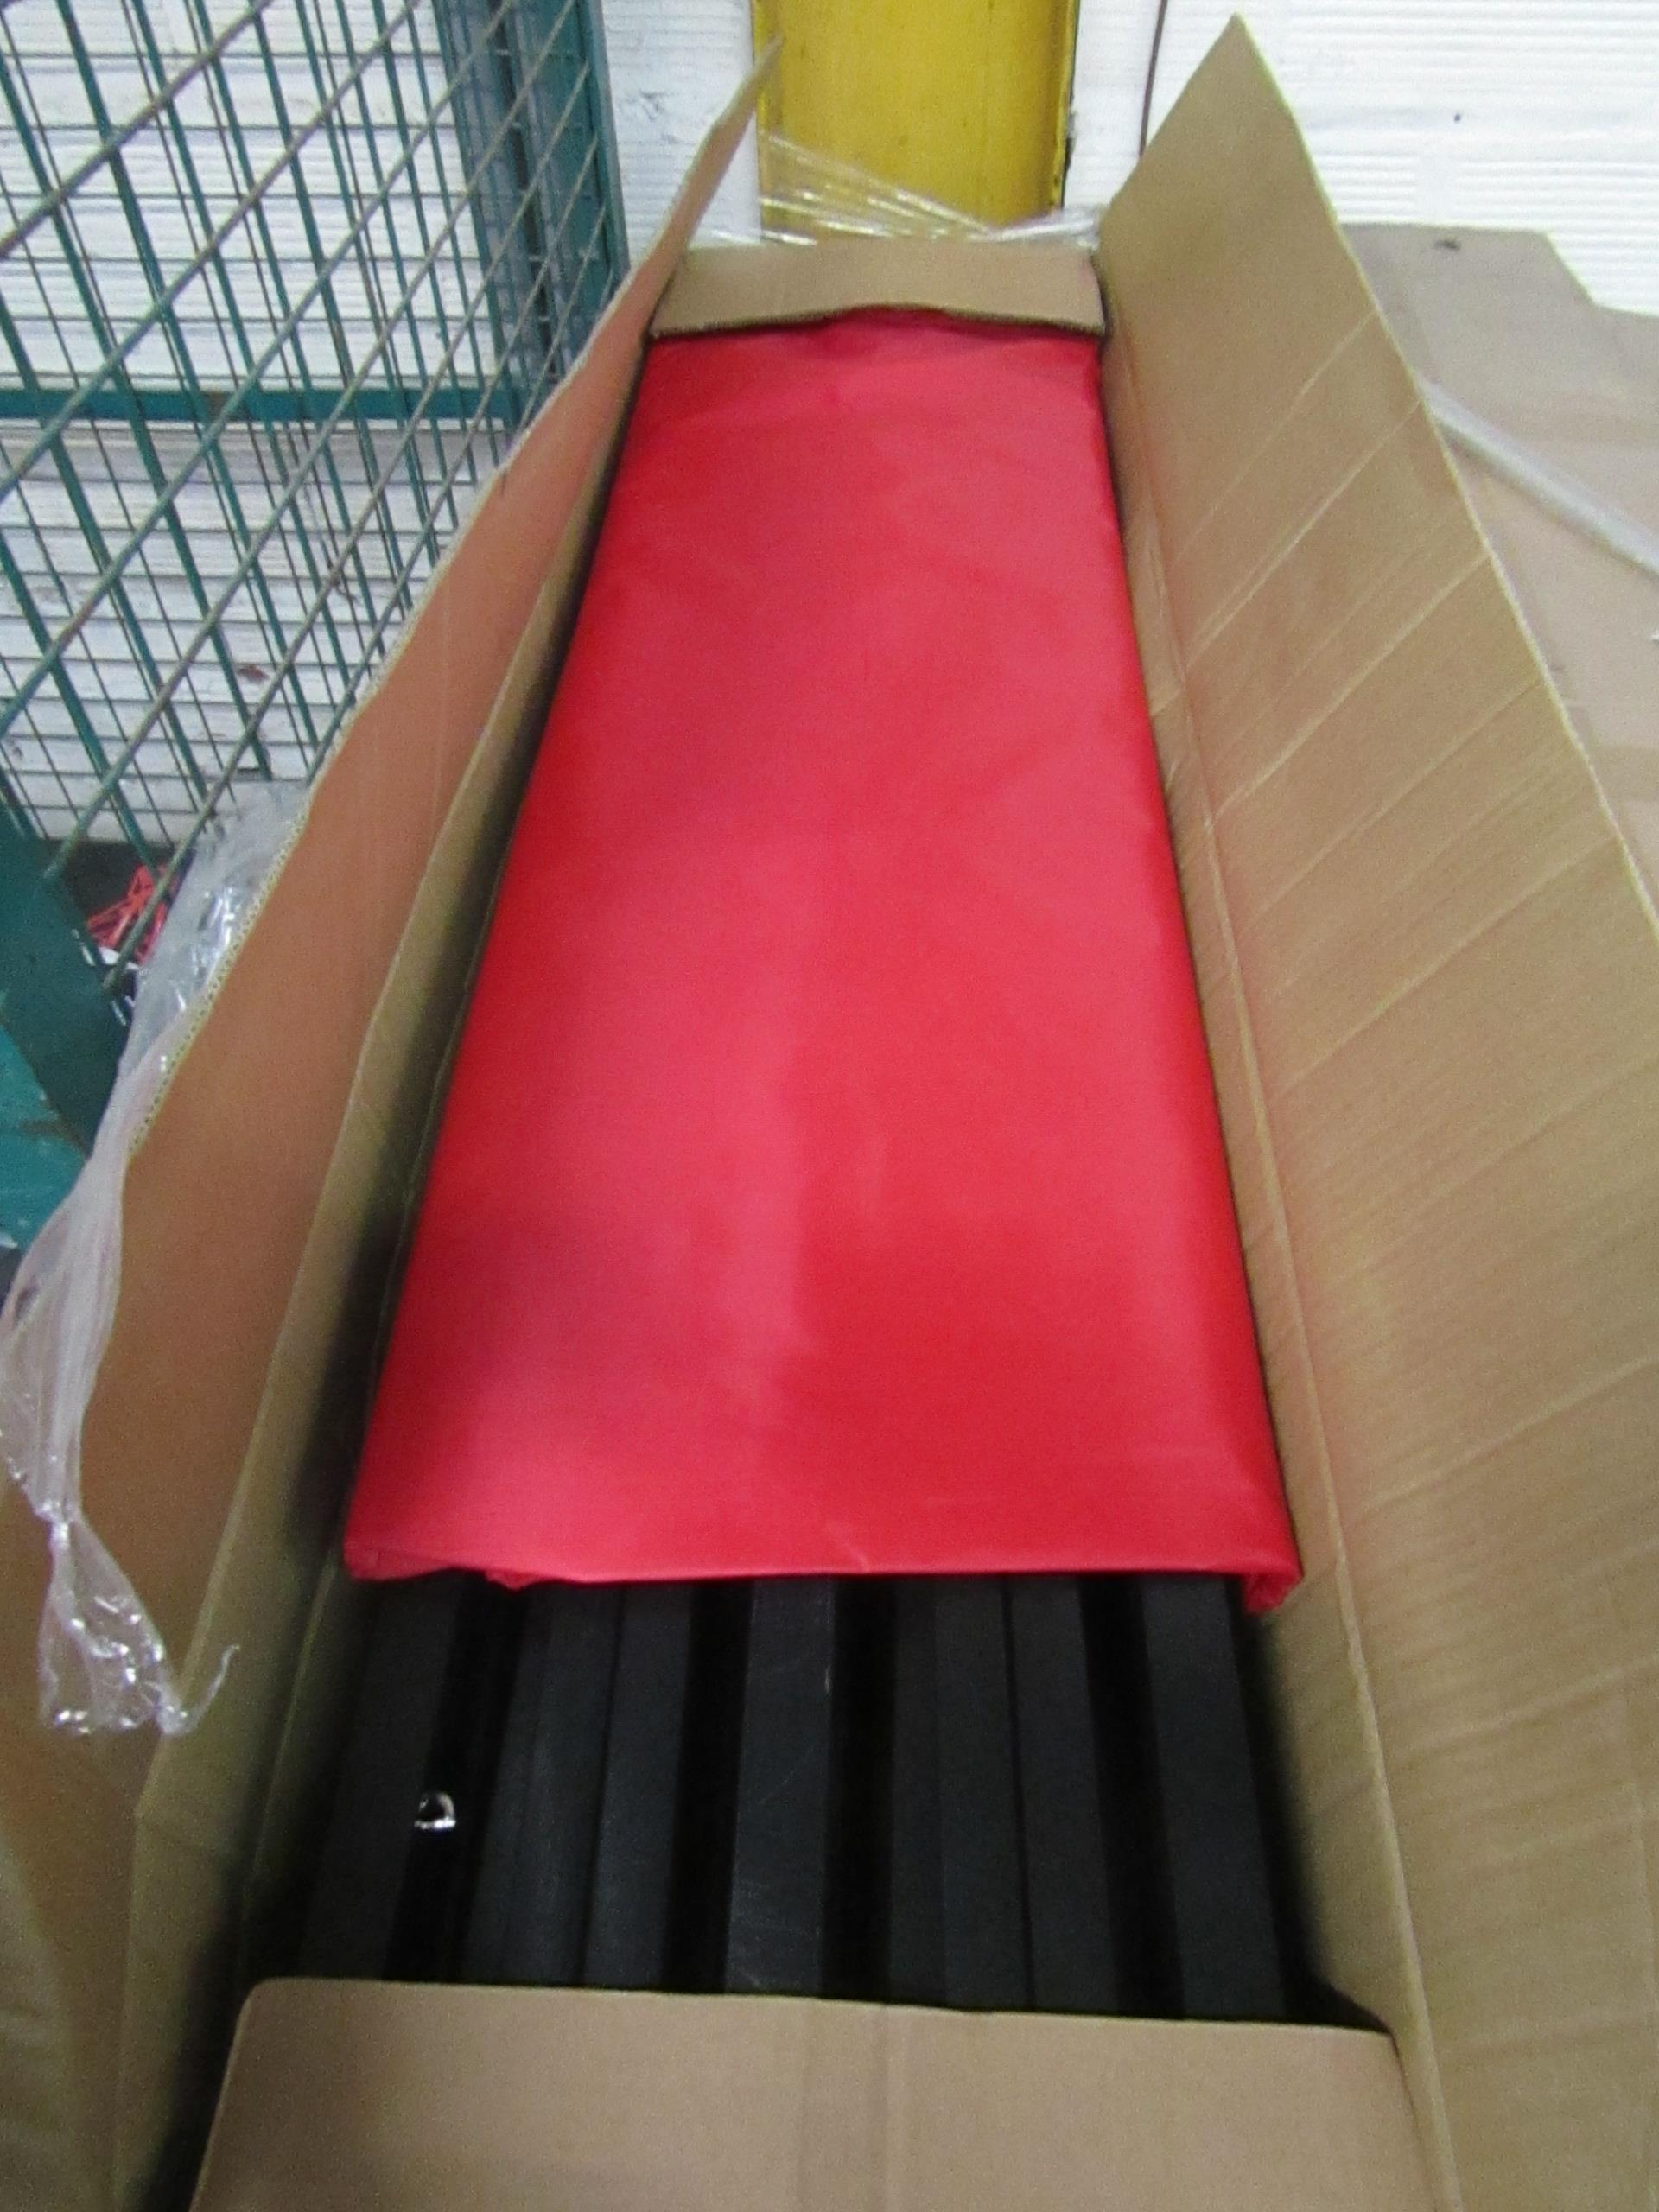 Lot 59 - 6 m x 3 m pop up gazebo with red cover, new and boxed